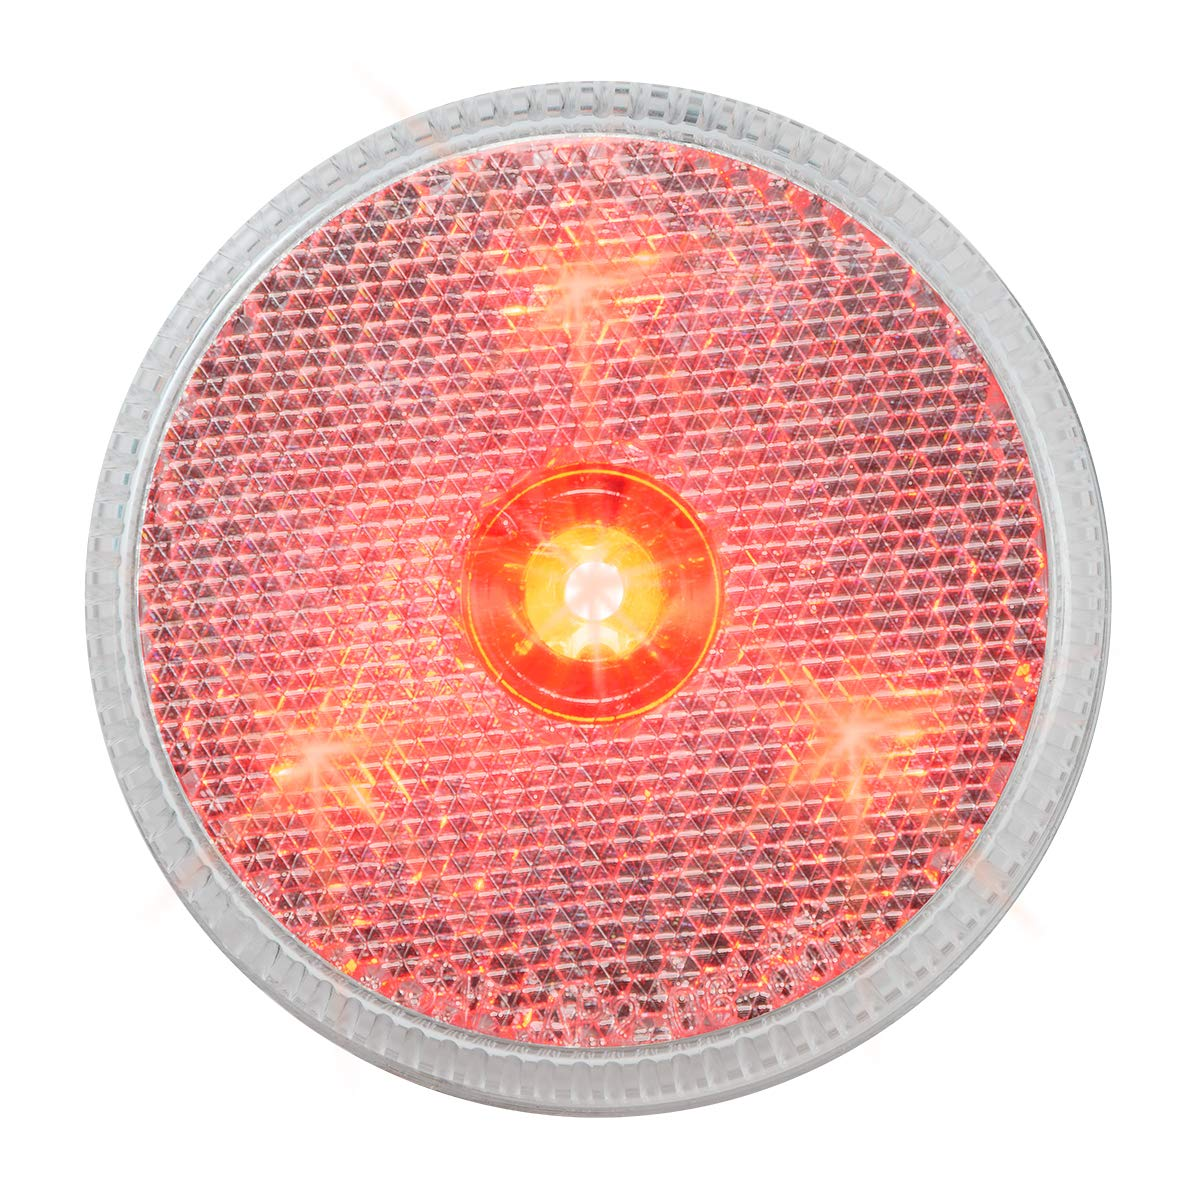 2.5 Reflector Red Marker LED 4-, Clear Lens Grand General 76973 Light